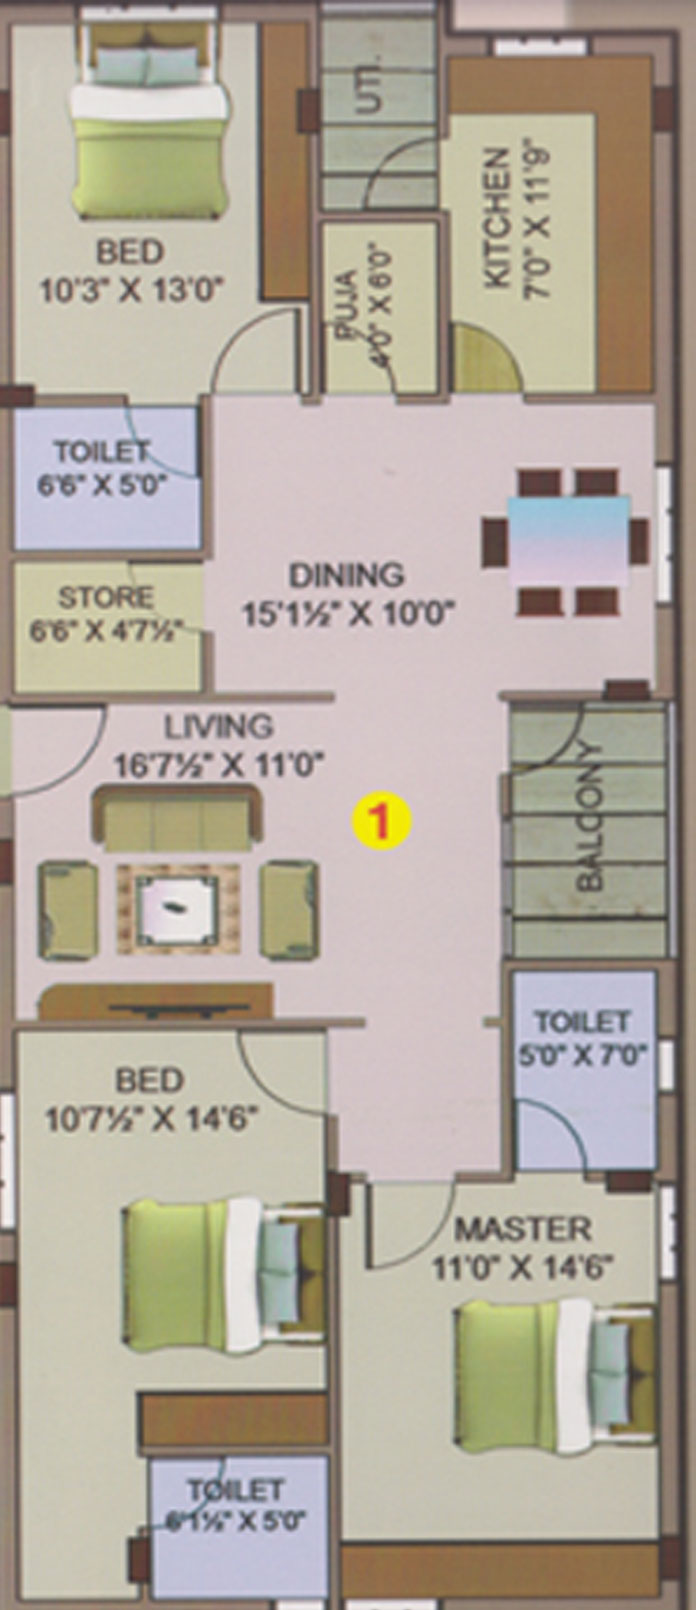 Sri Nidhi floorplan 1650sqft west facing